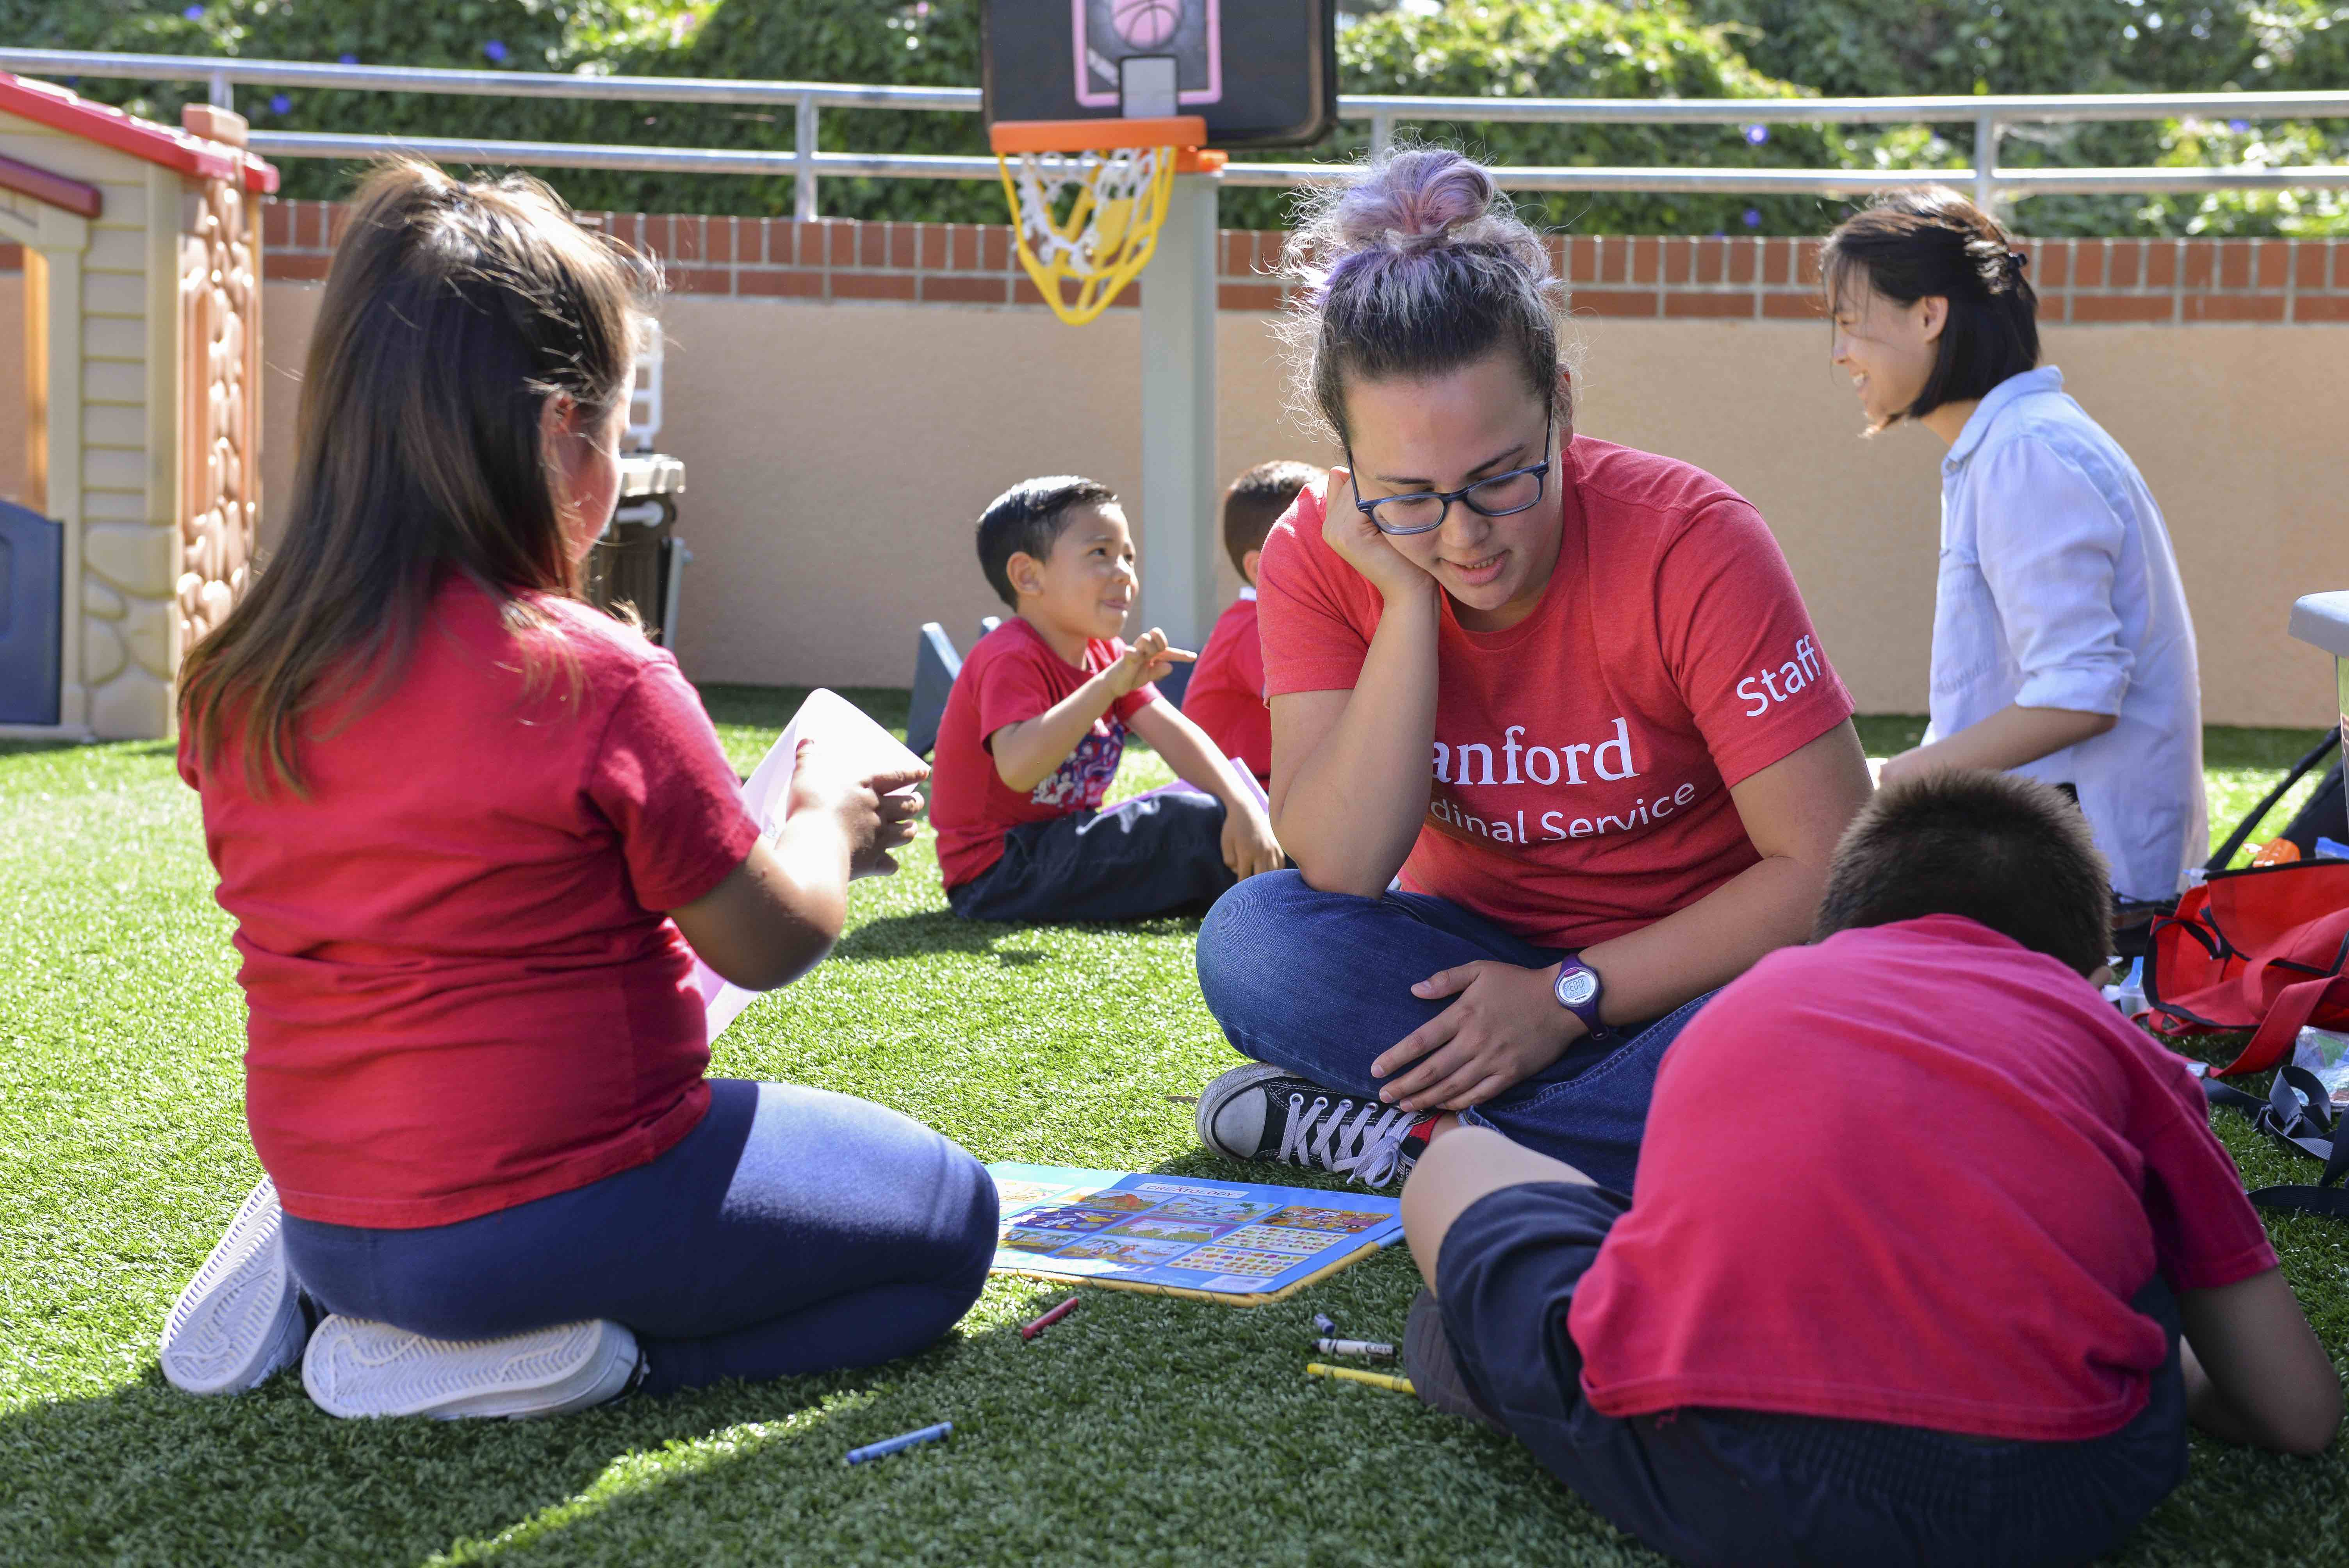 Math Education Program Brings Stanford Students Into The